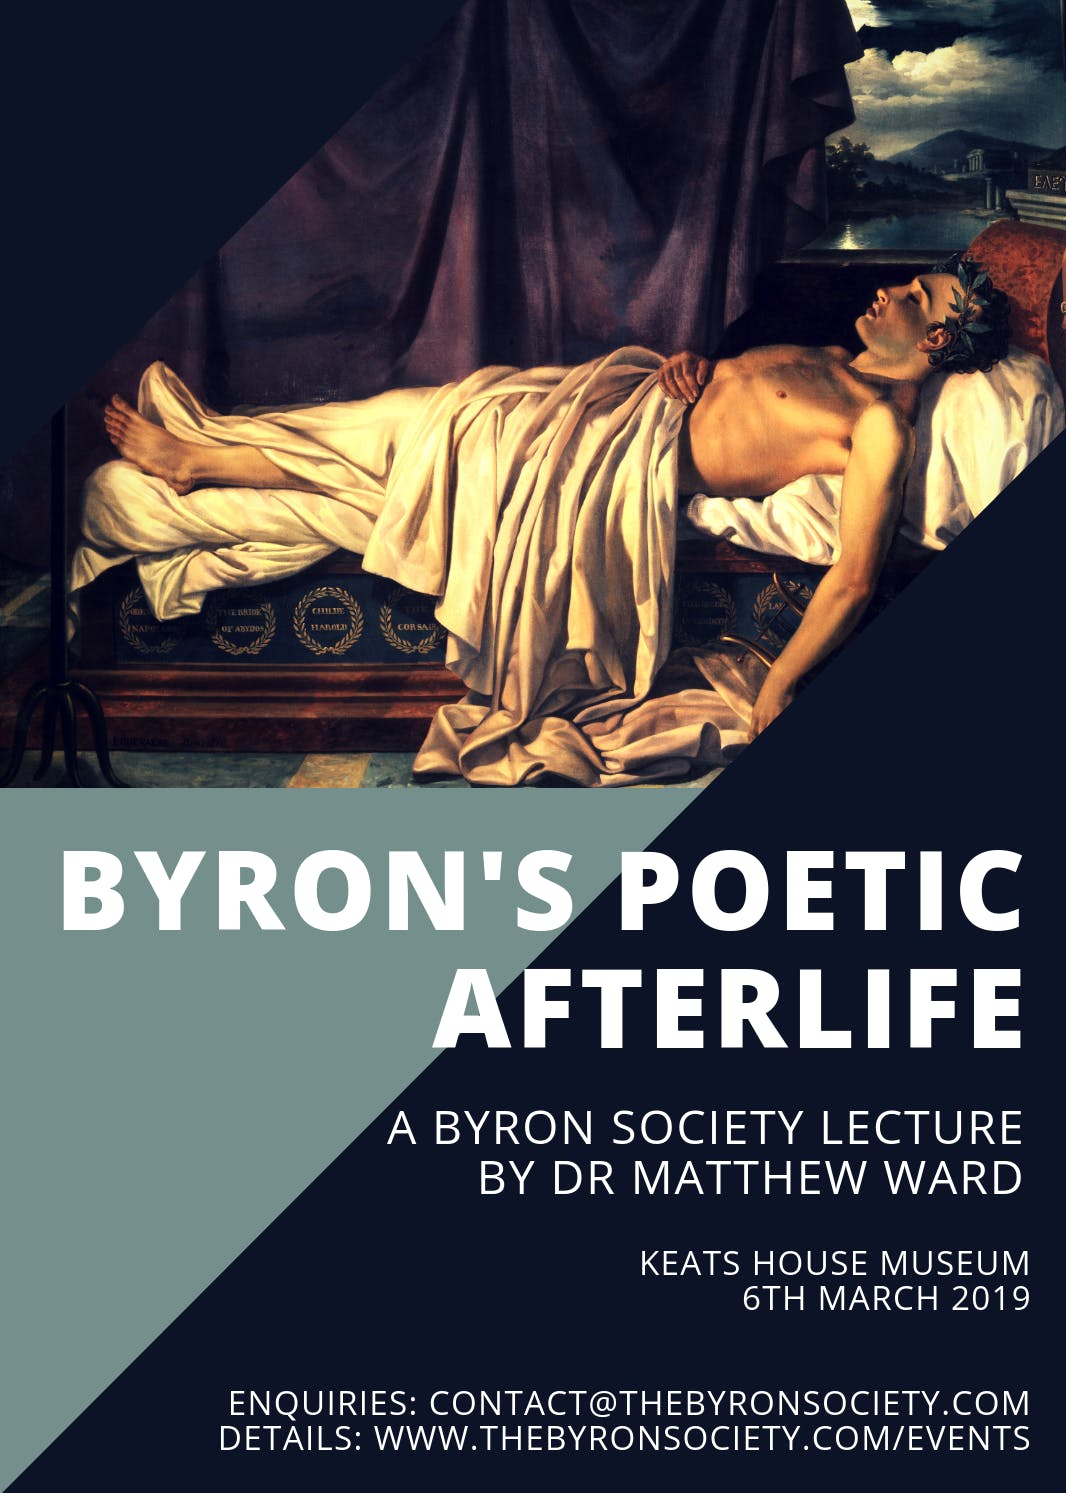 Byron's Poetic Afterlife